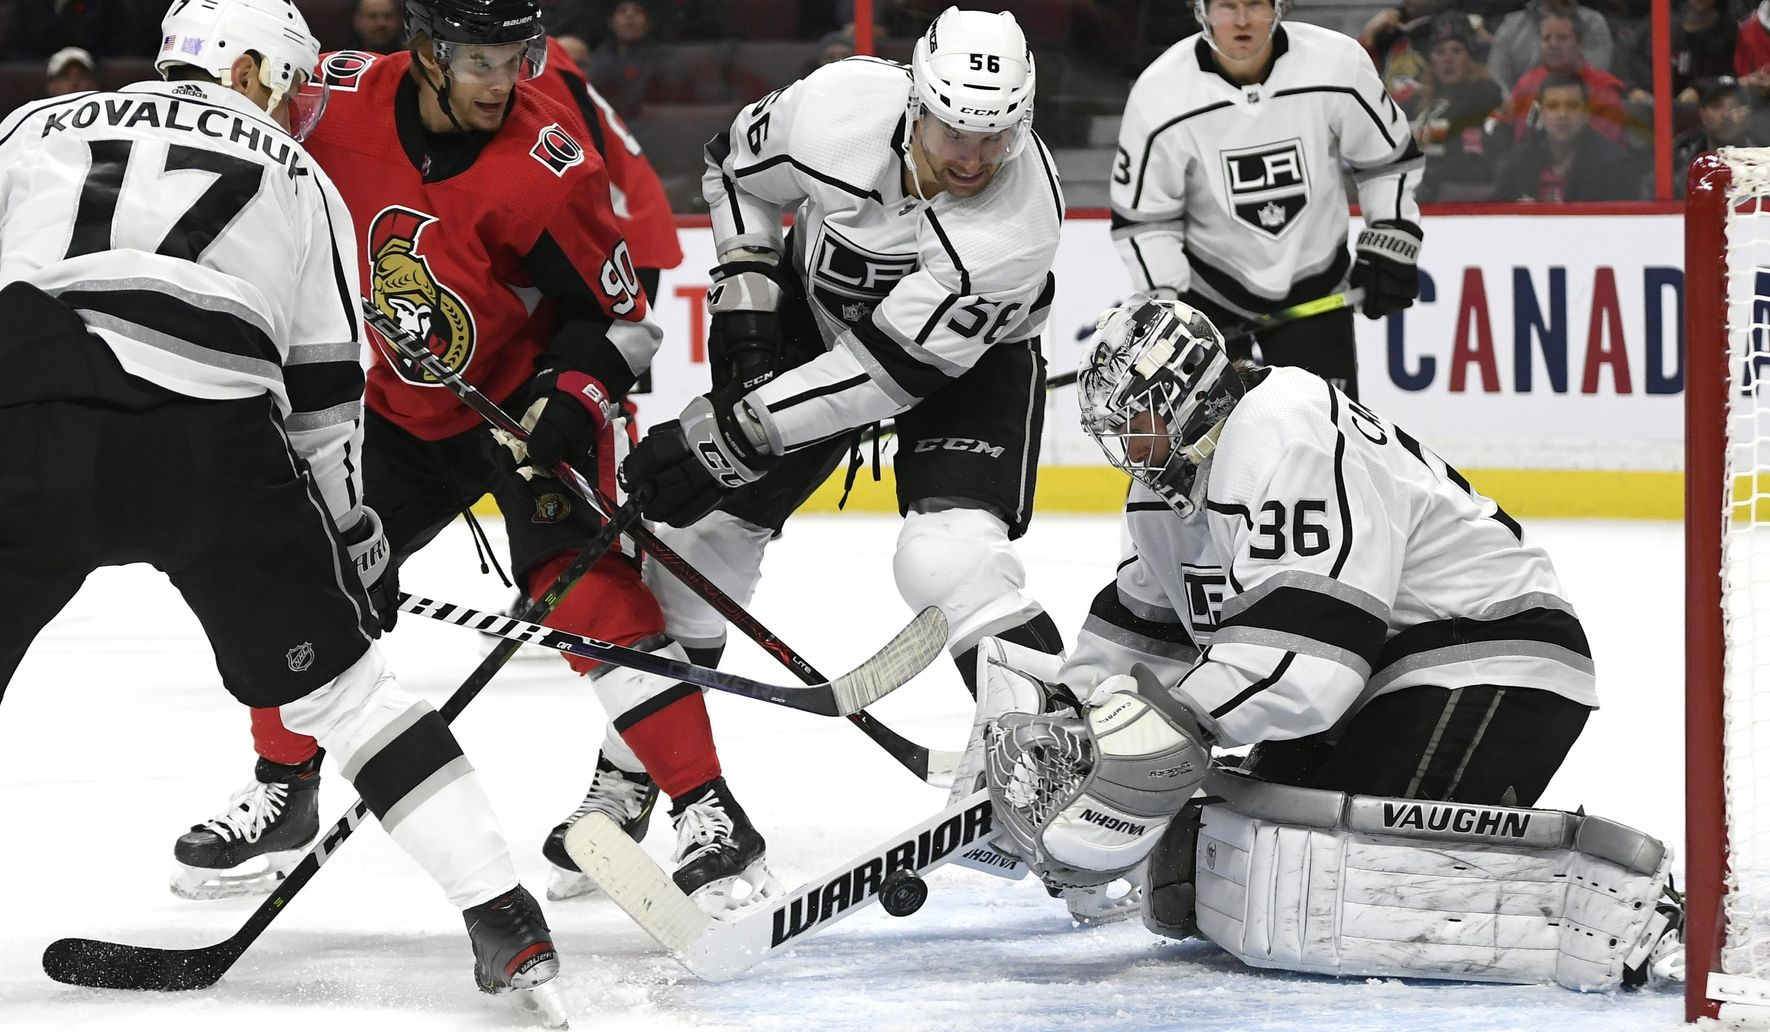 Kings_senators_hockey_76052_c0-278-4162-2704_s1770x1032